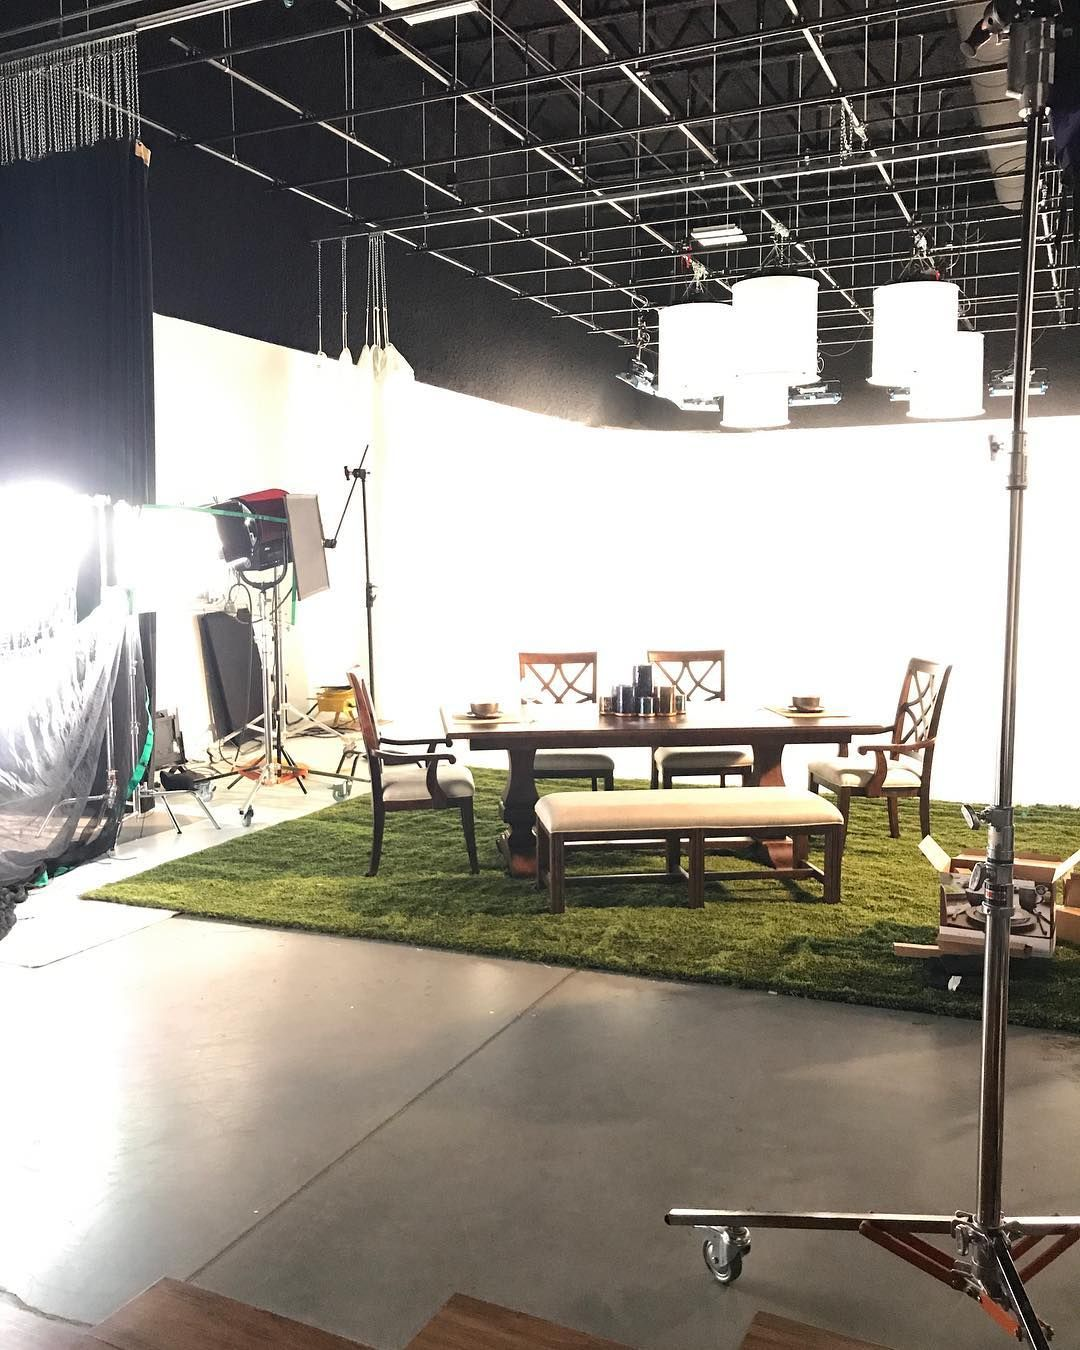 Doing A Fun Furniture Shoot Today Onset Inhouse Studio Photoshoot Waukesha Wisconsin Workfun Diningset Steinhafels Relax